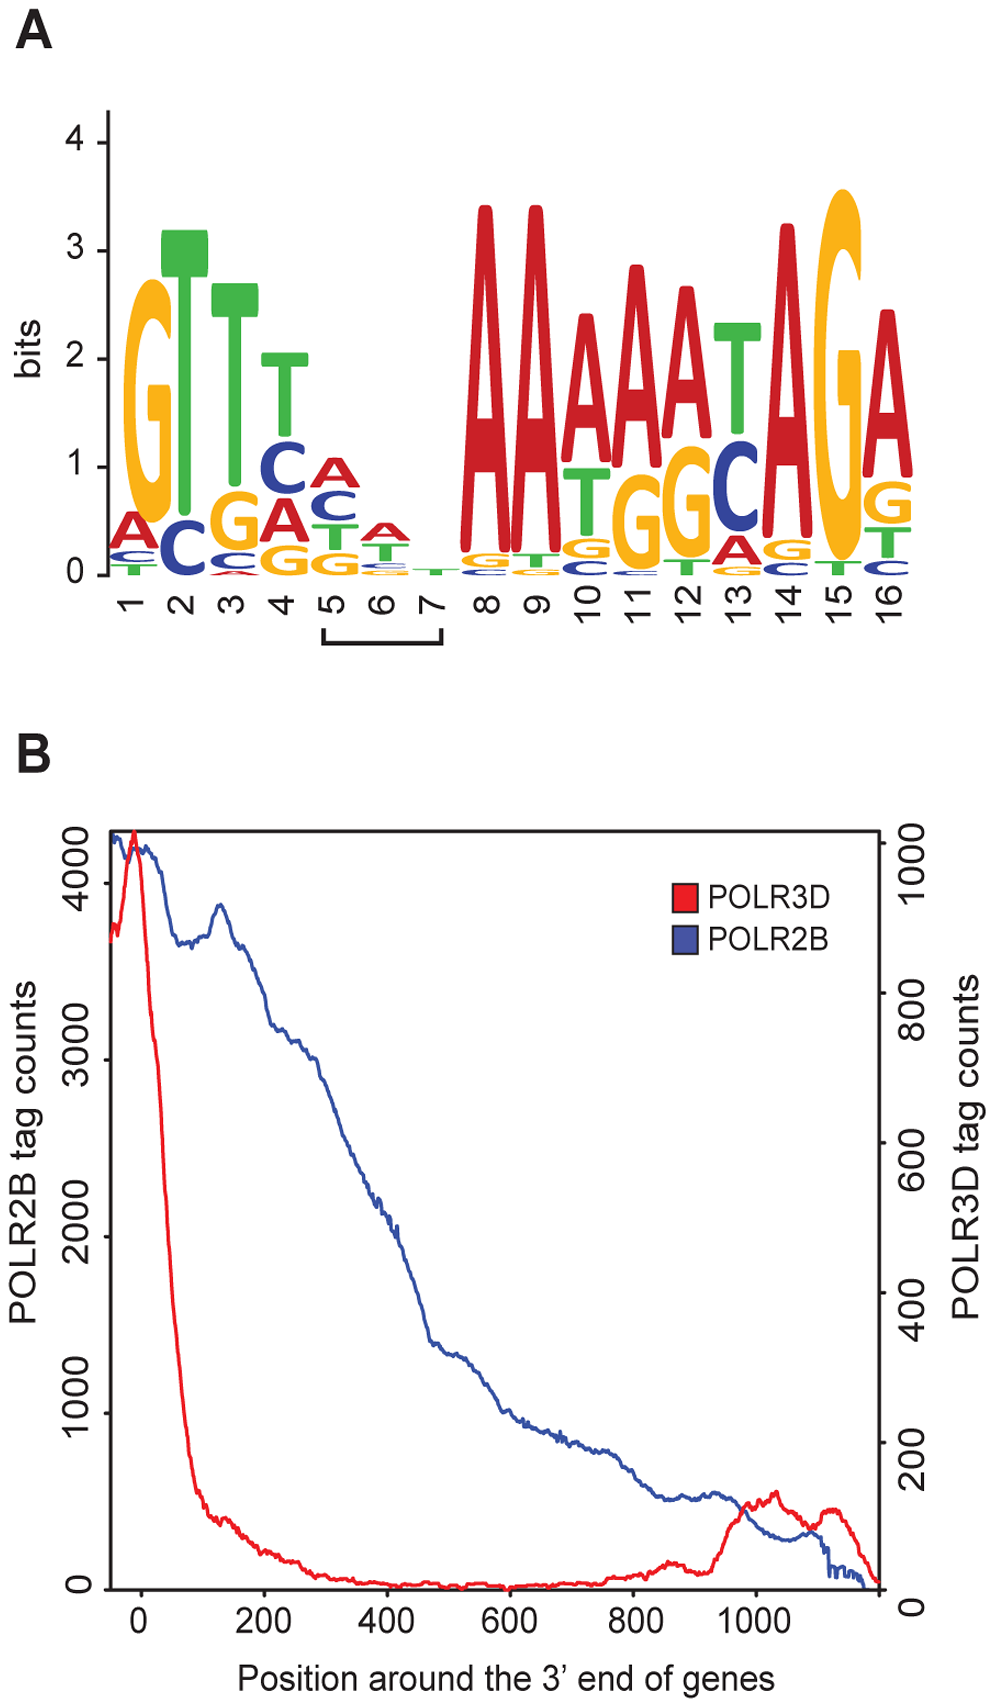 RNA pol II and III occupancy within 3′ flanking regions.